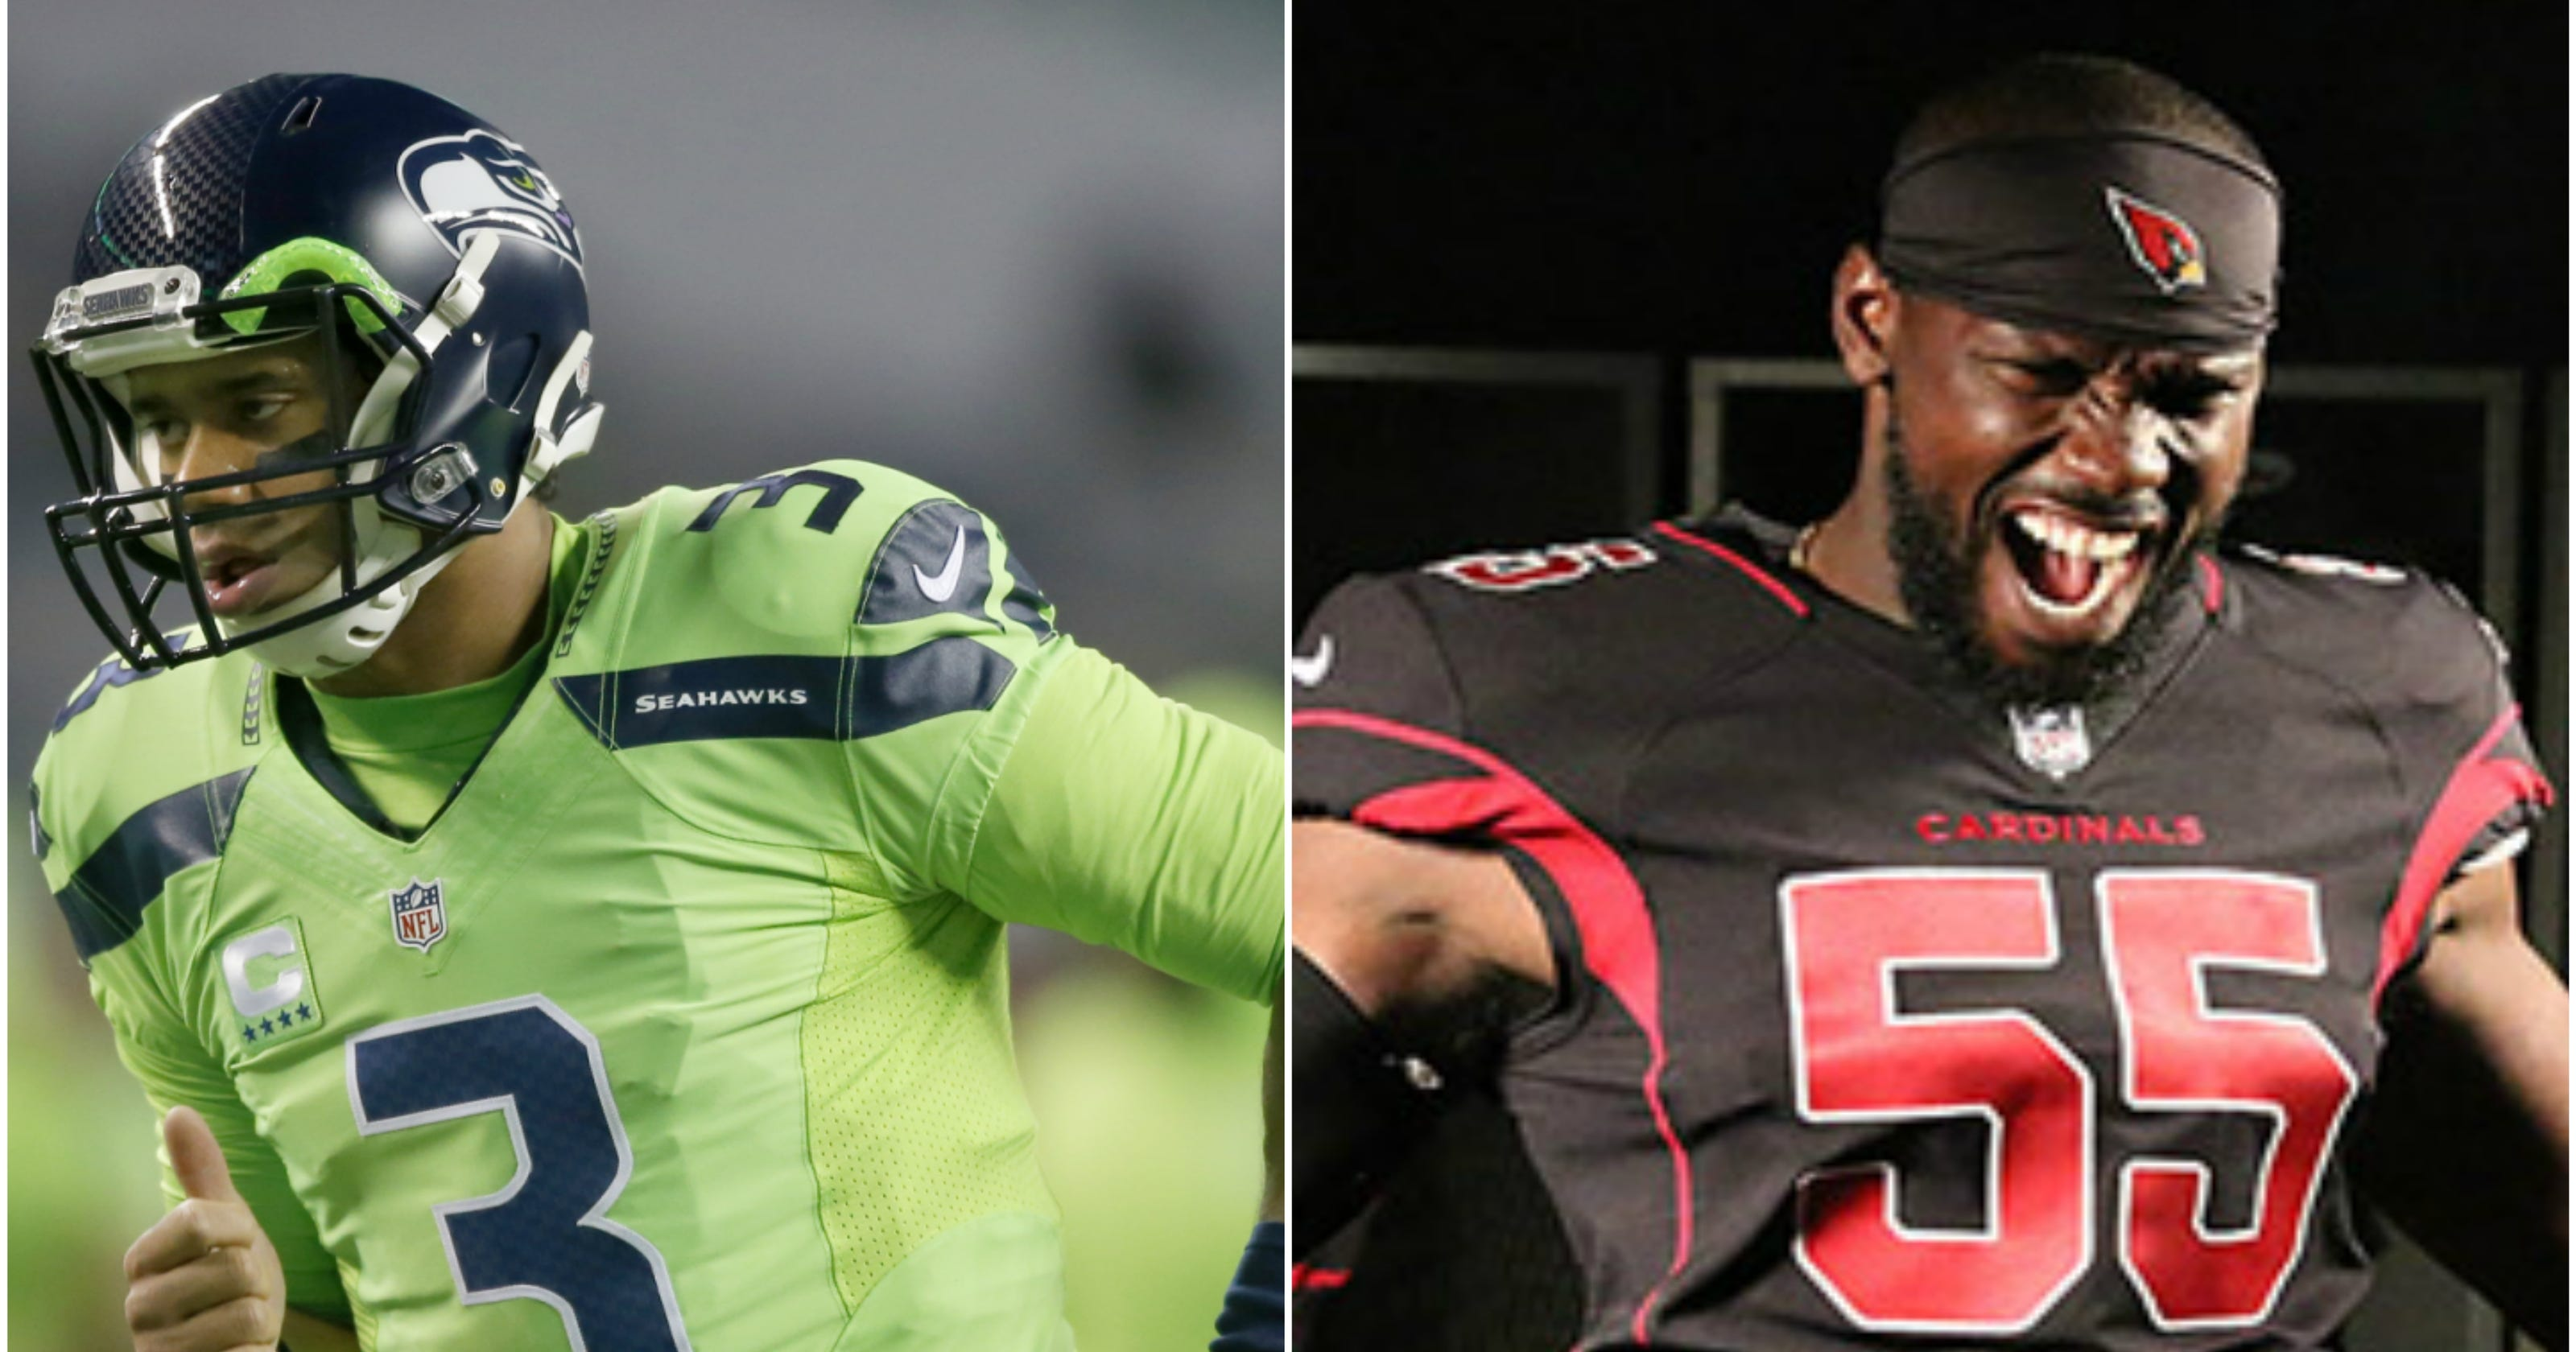 Arizona Cardinals-Seattle Seahawks Color Rush uniforms are hideous combo e8d9d004d